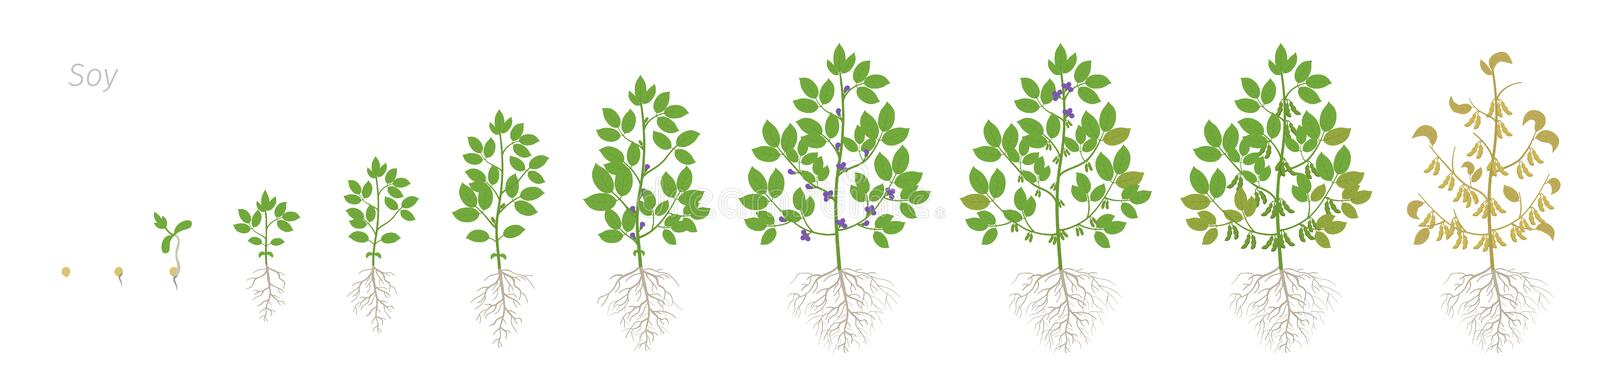 Growth stages of Soybean plant with roots. Soya bean phases set ripening period. Glycine max life cycle, animation. Growth stages of Soybean plant with roots royalty free illustration